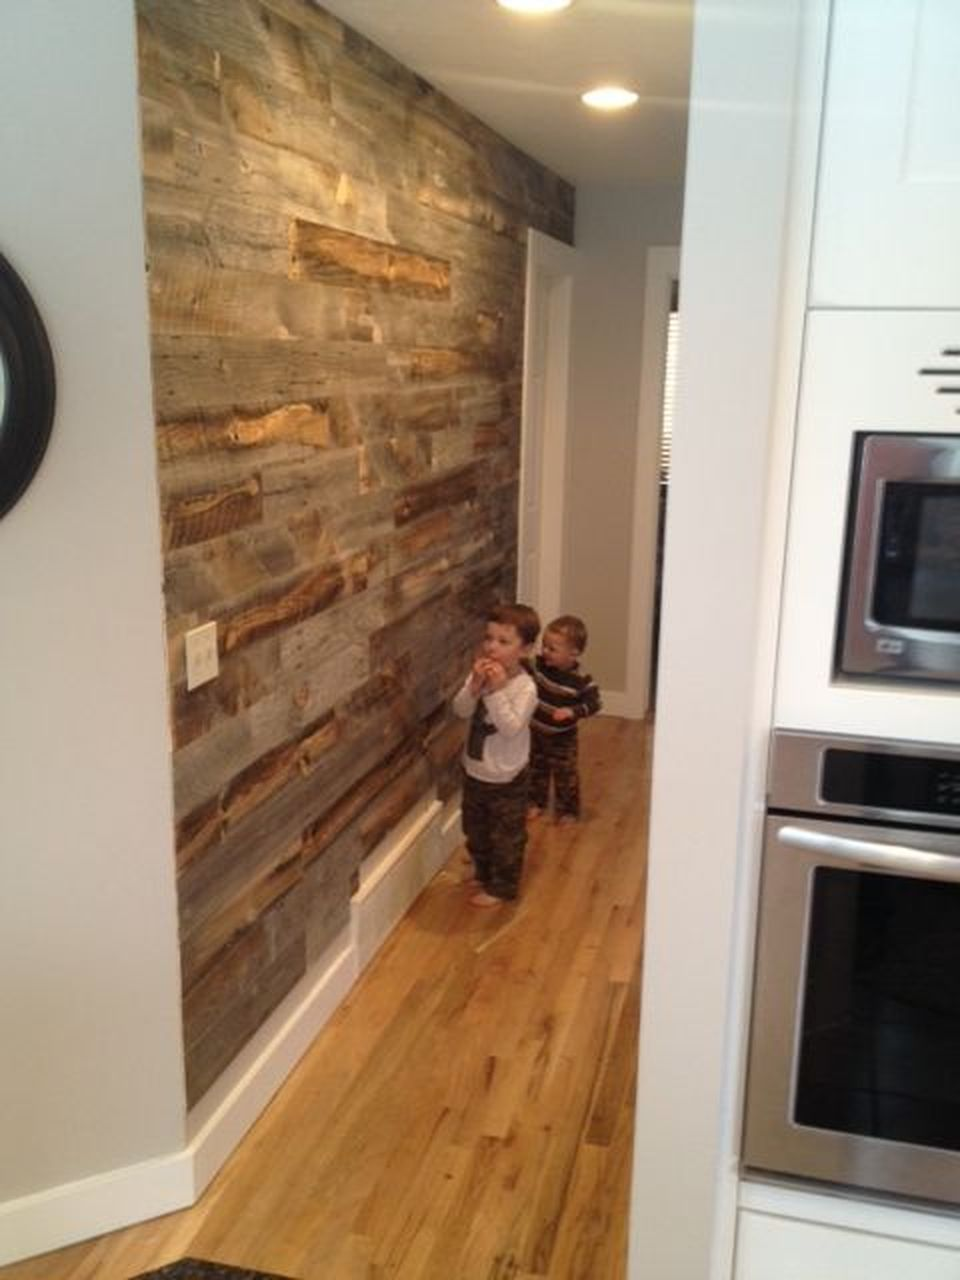 Artistic pallet peel and stick wood wall design decorations also panels provide an instant reclaimed look home rh pinterest